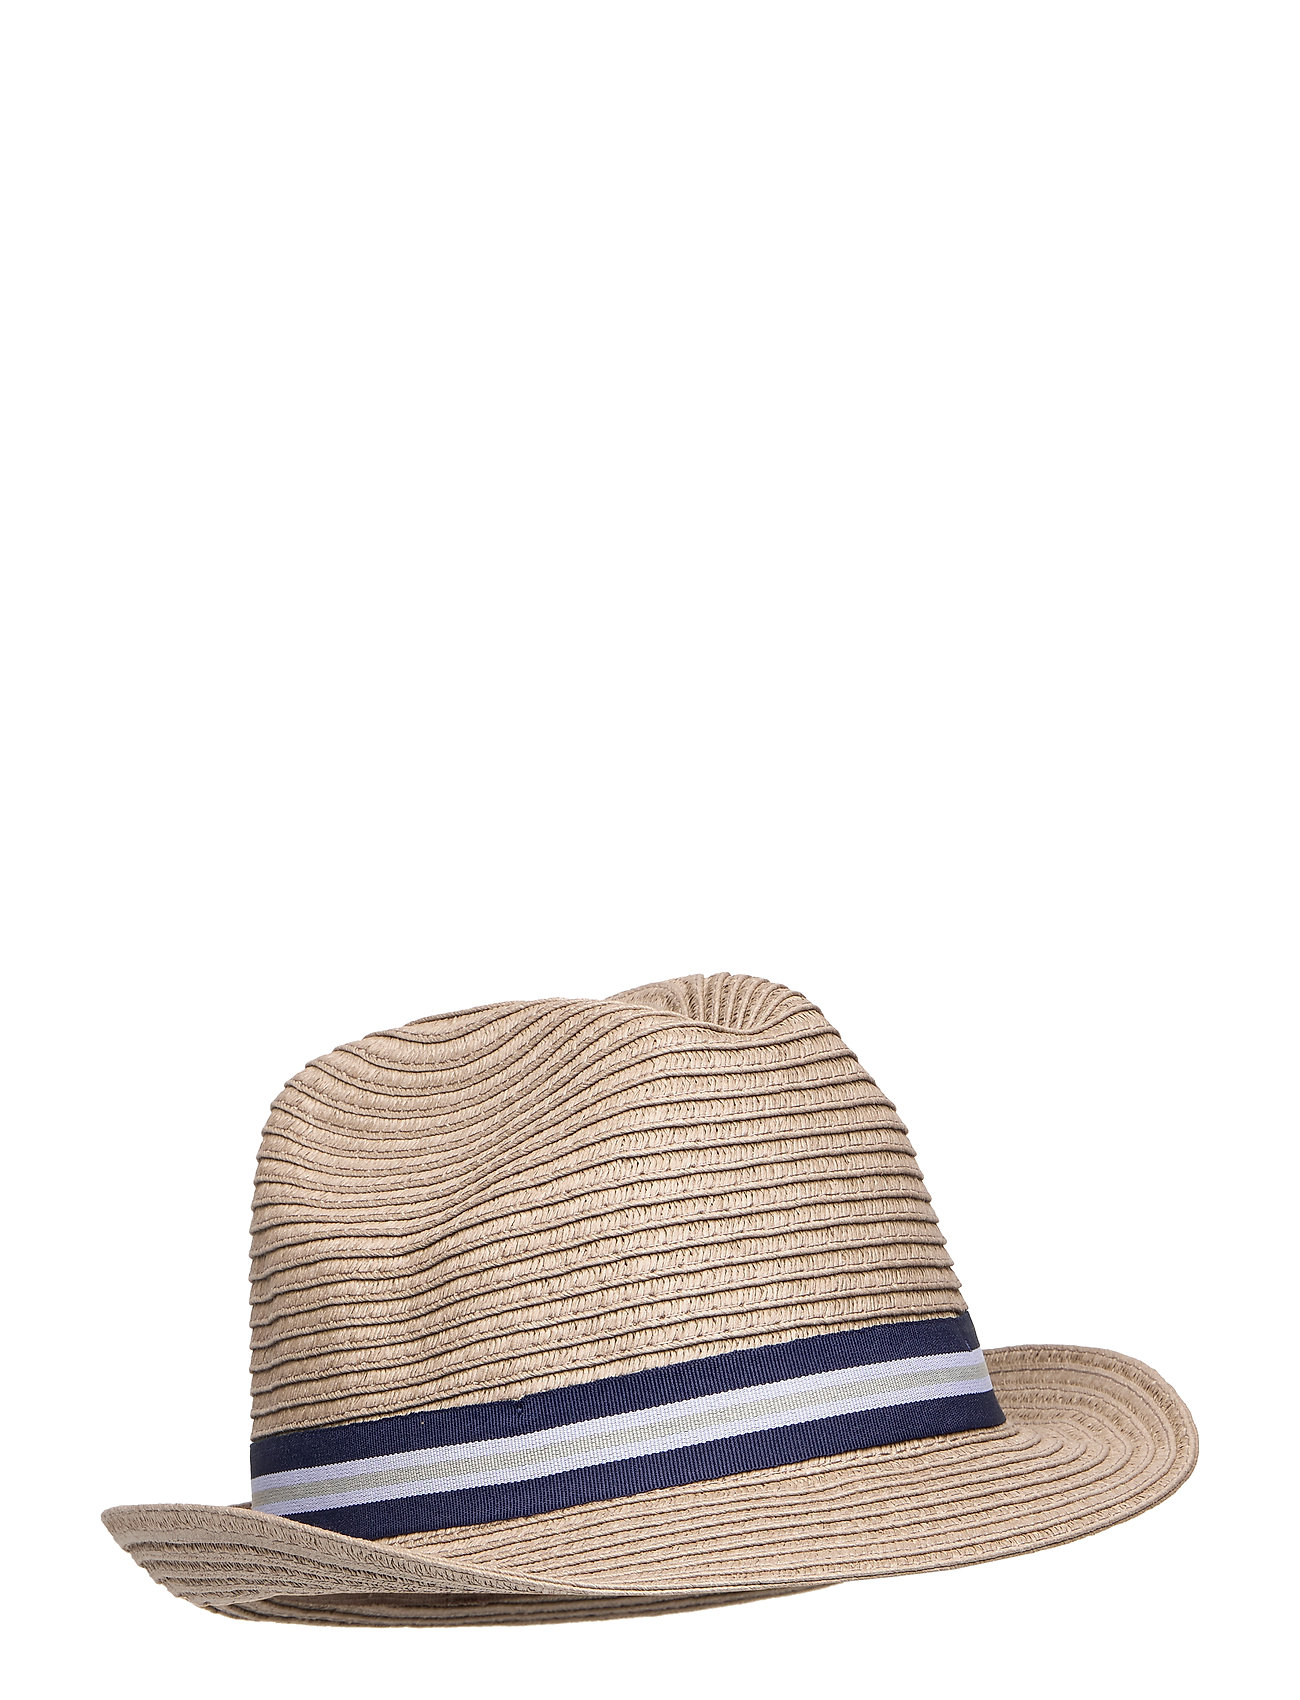 name it NKMACC-DAVIO STRAW HAT - SILVER MINK